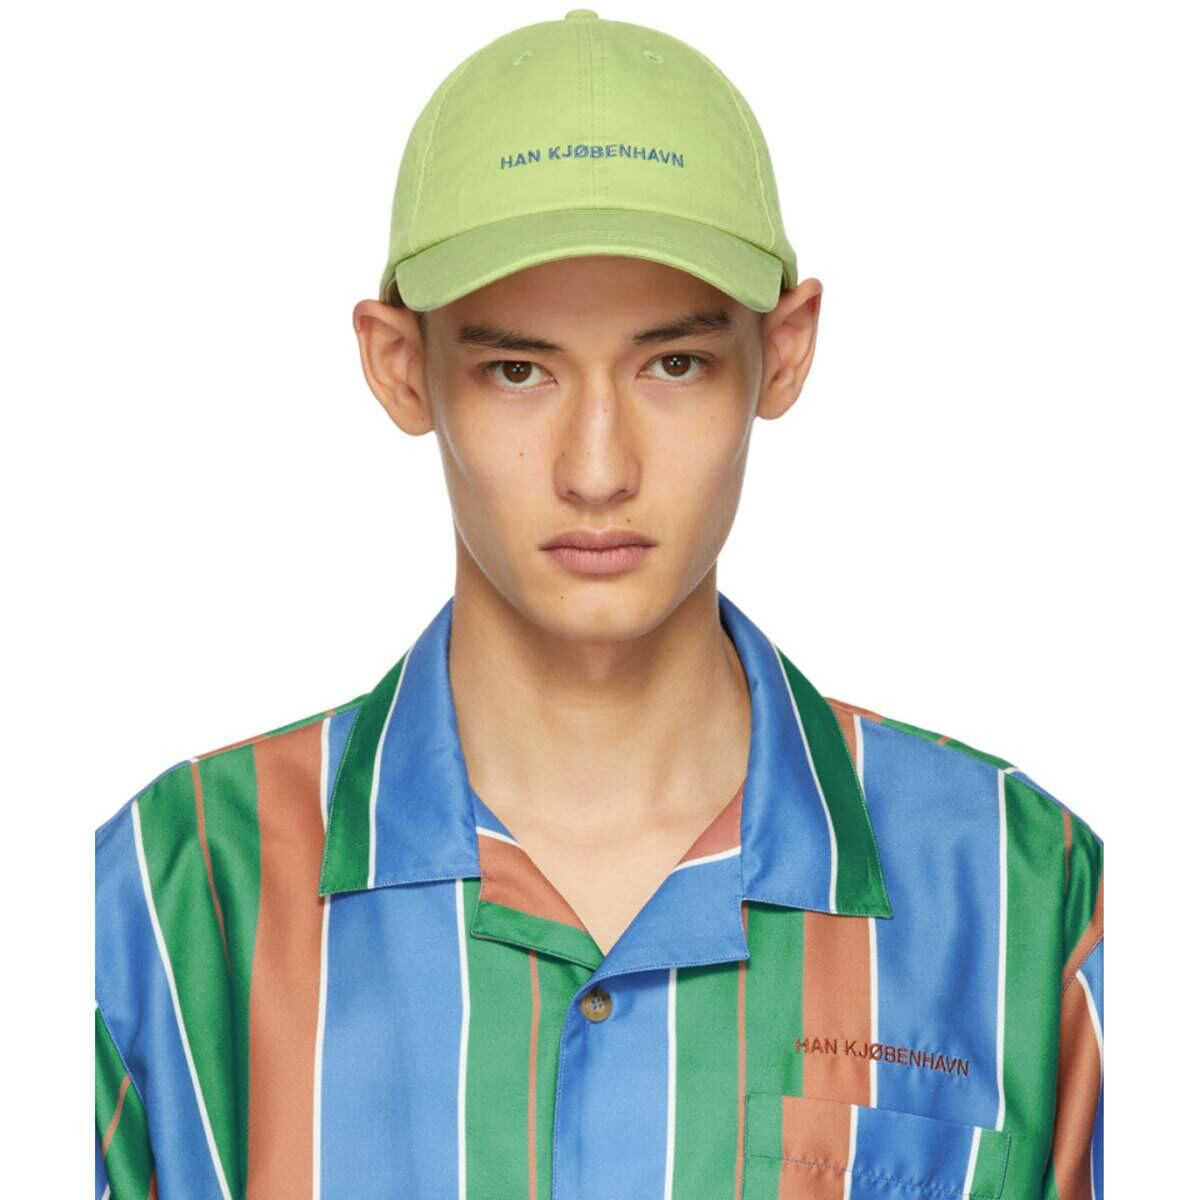 Han Kjobenhavn Green Logo Cap Ssense USA MEN Men ACCESSORIES Mens CAPS